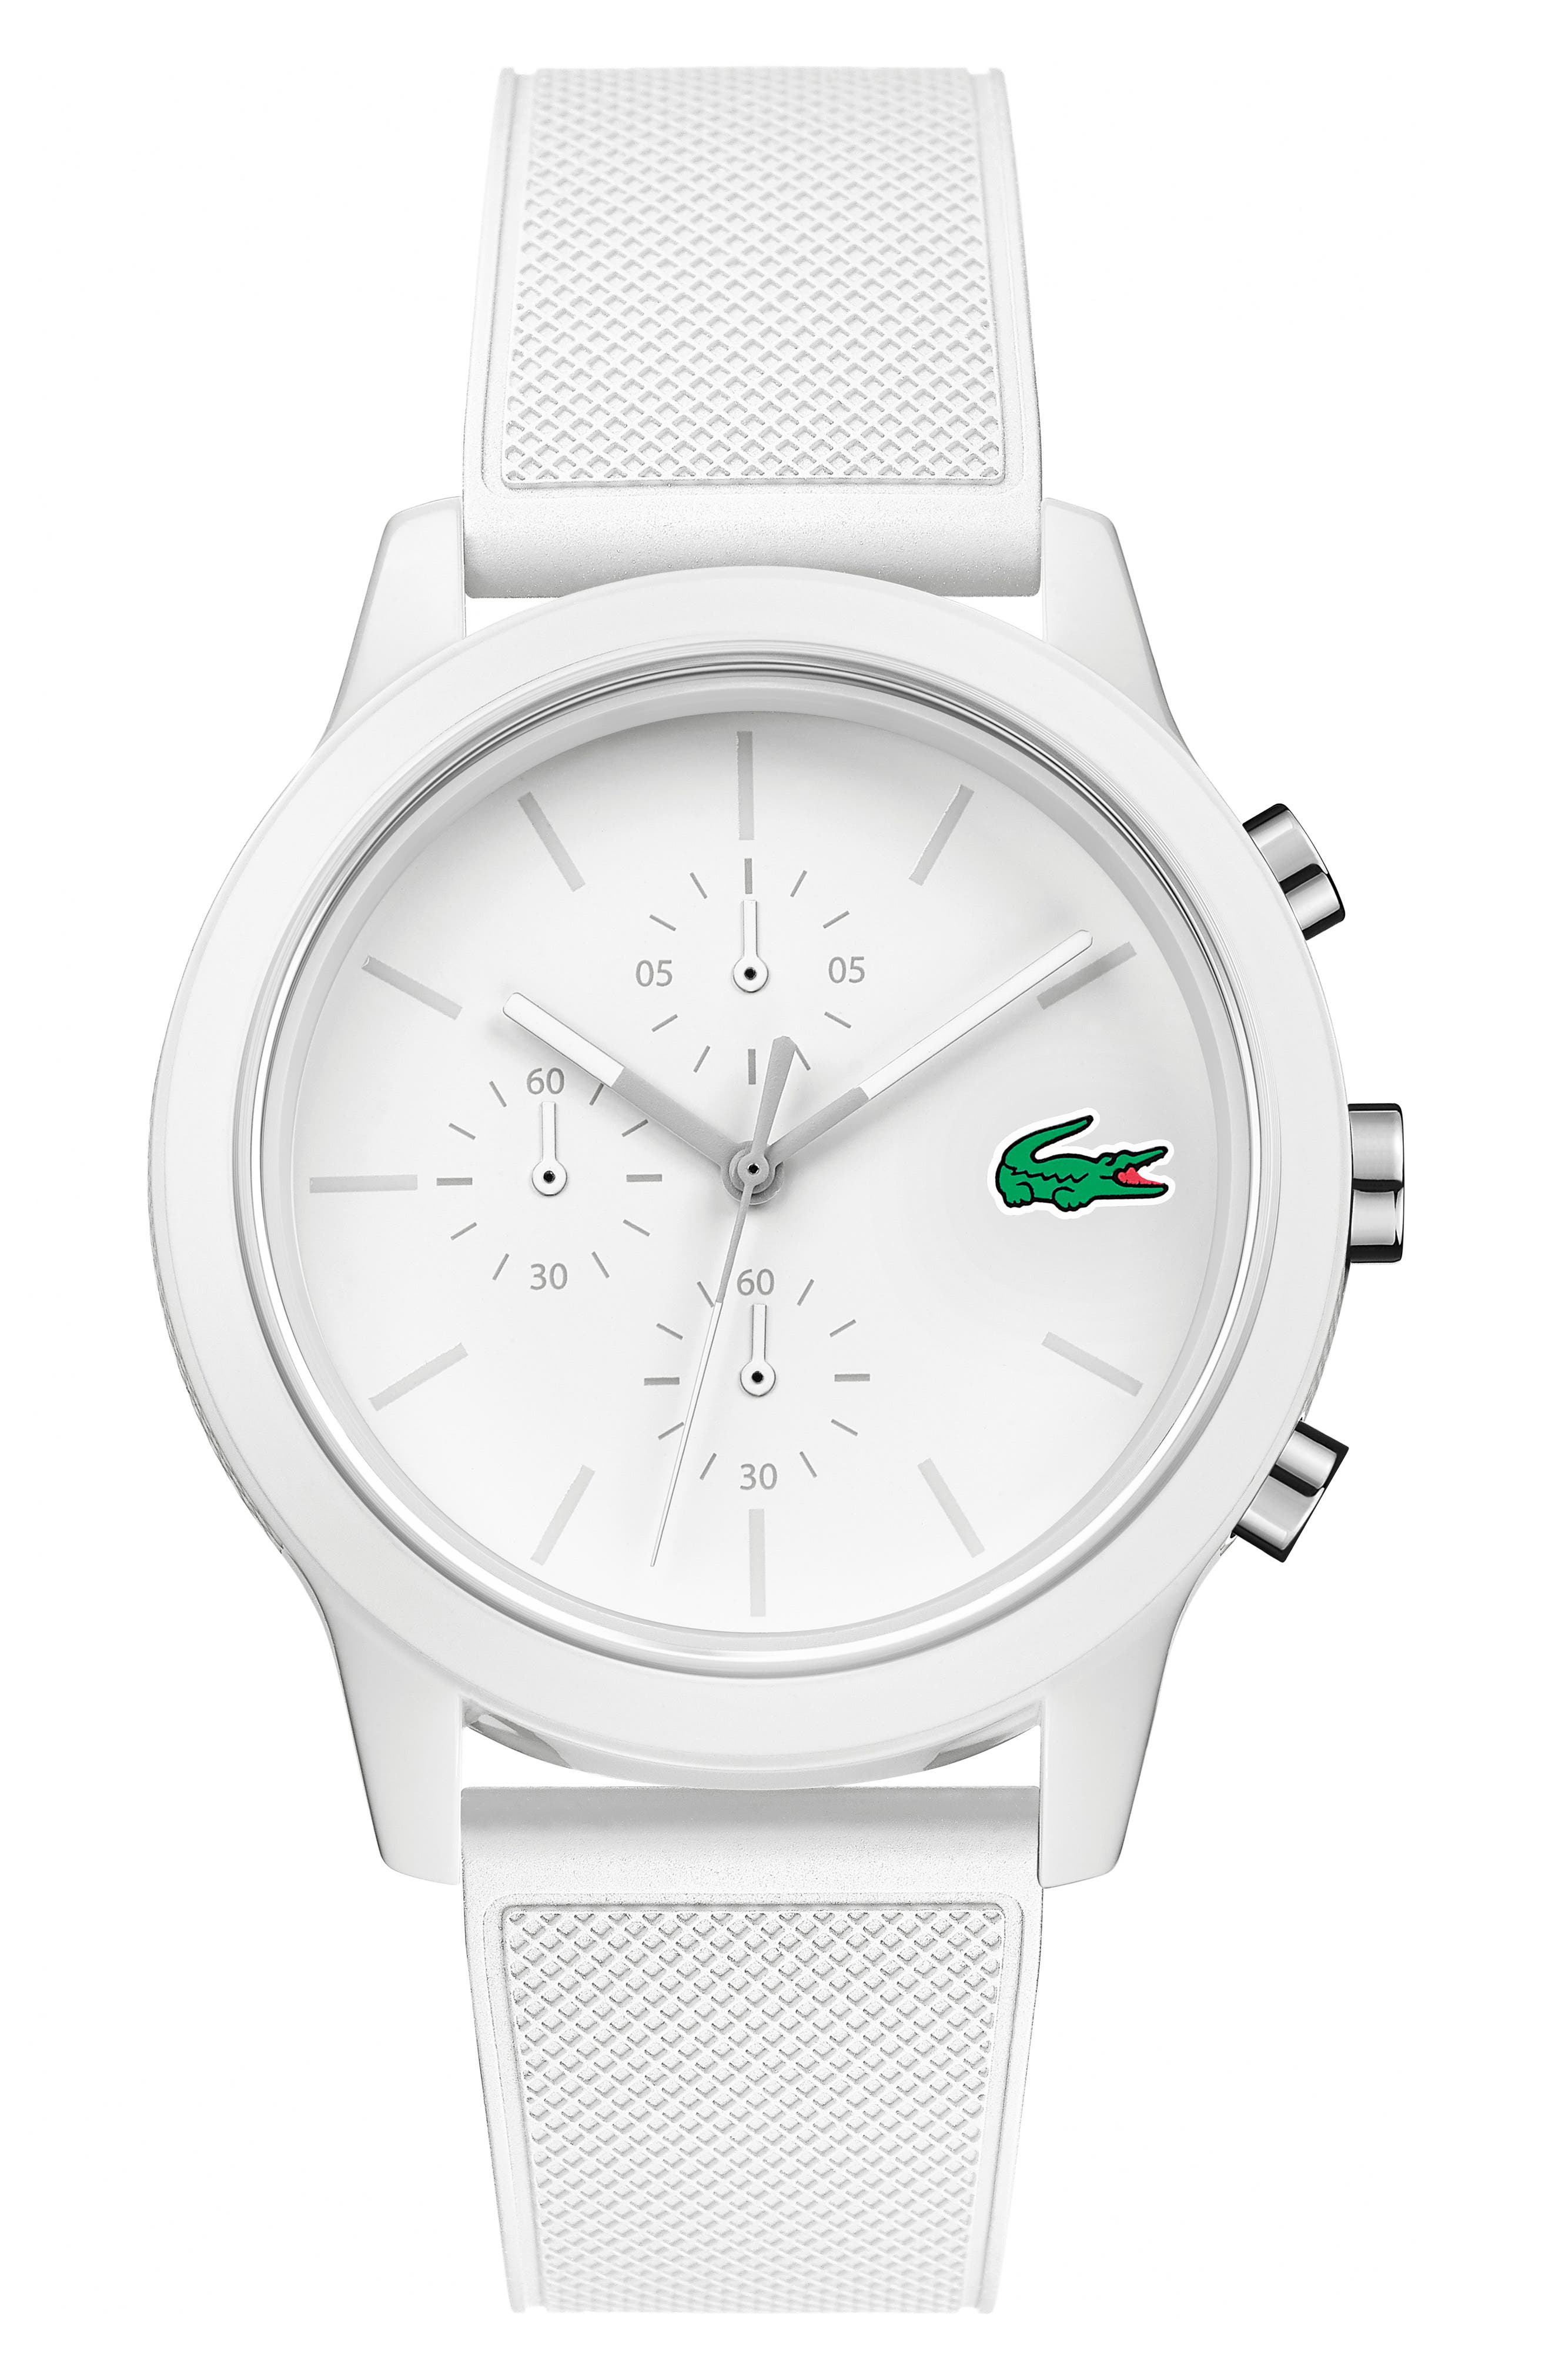 LACOSTE, 12.12 Chronograph Silicone Band Watch, 44mm, Main thumbnail 1, color, WHITE